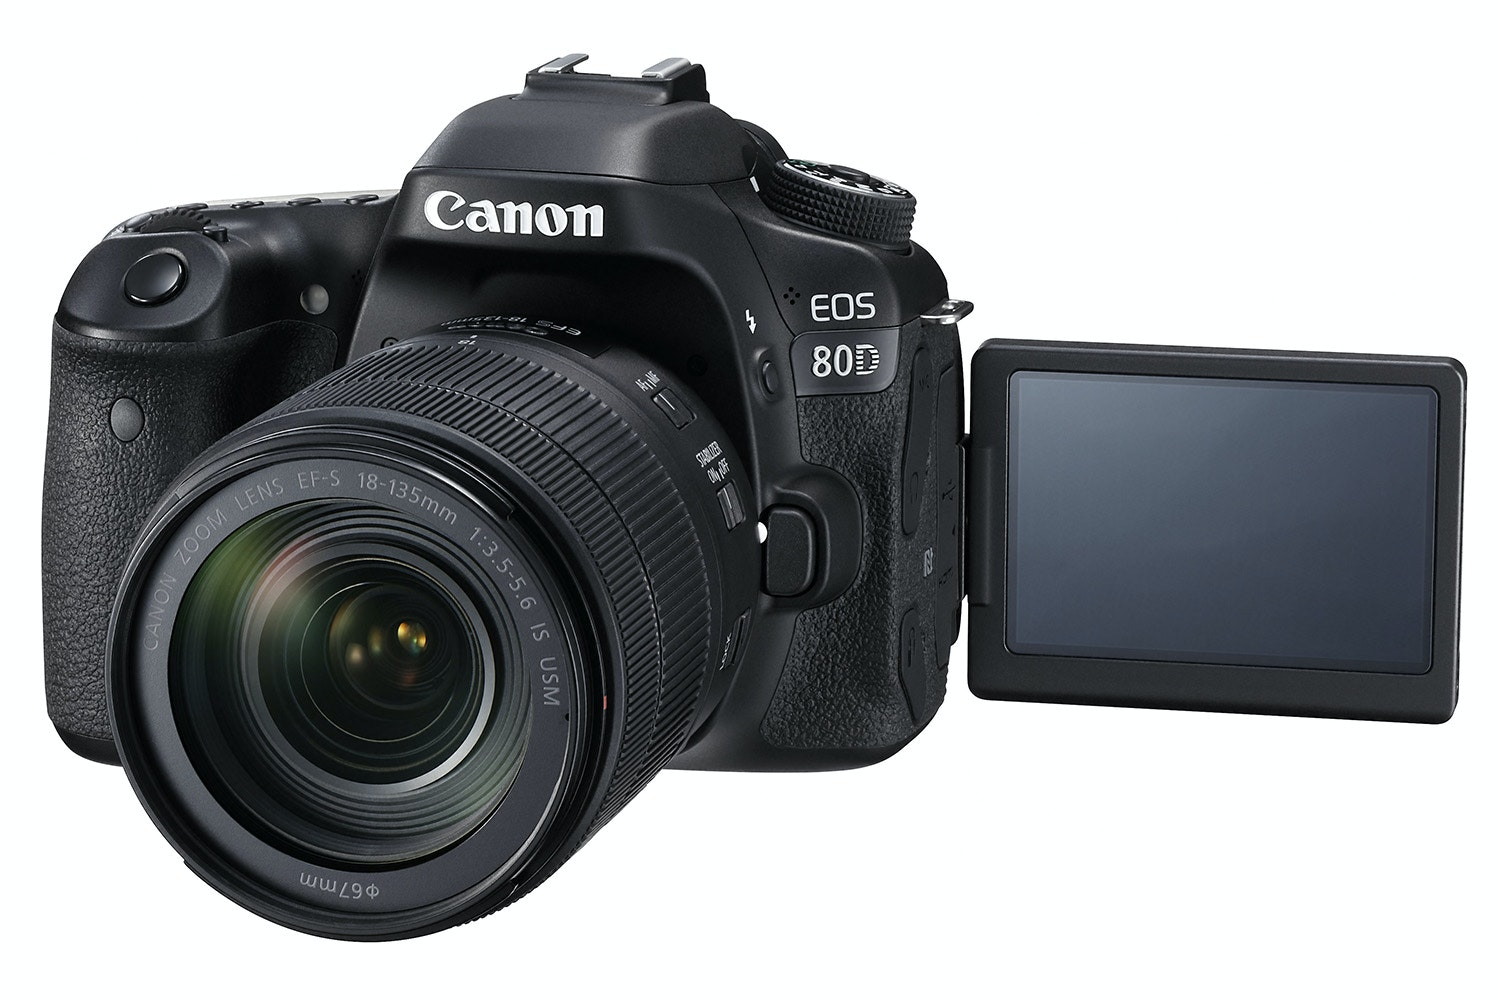 Canon EOS 80D & 18-135mm IS USM Lens